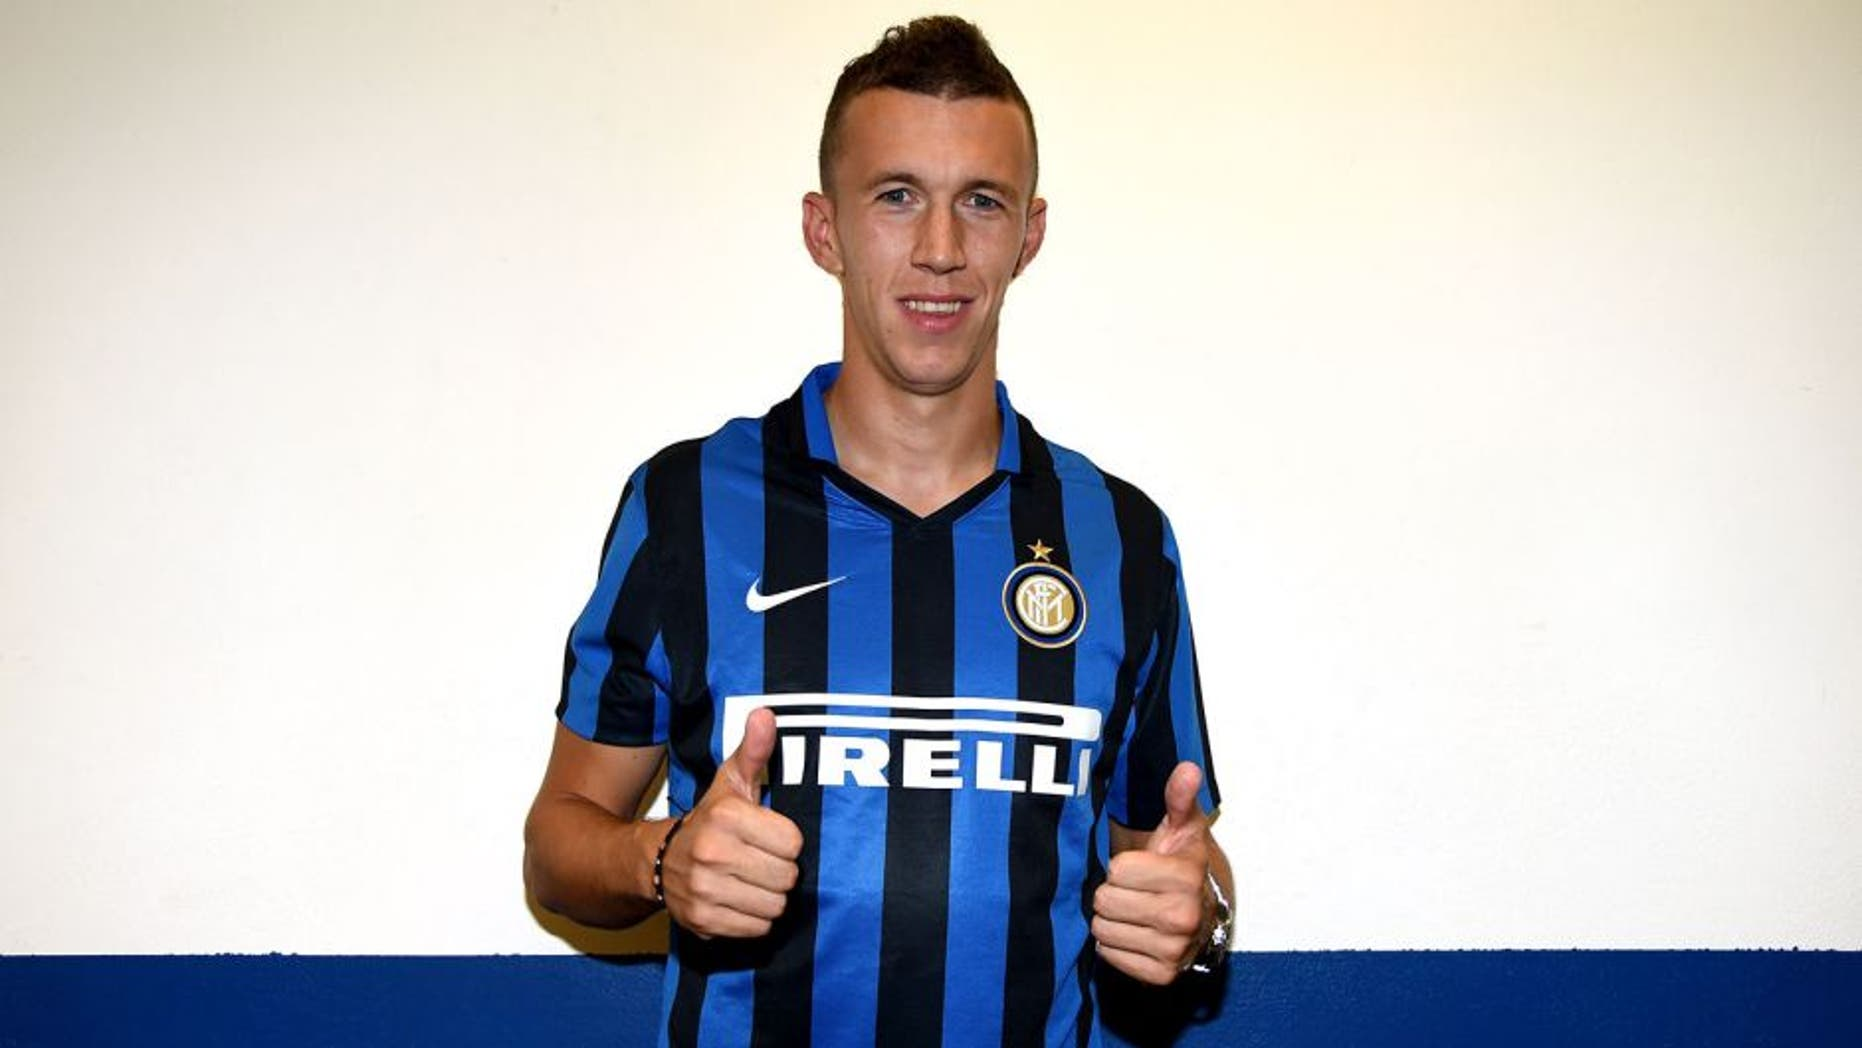 MODENA, ITALY - AUGUST 30: Ivan Perisic of FC Internazionale attends the Serie A match between Carpi FC and FC Internazionale Milano at Alberto Braglia Stadium on August 30, 2015 in Modena, Italy. (Photo by Claudio Villa - Inter/Getty Images)